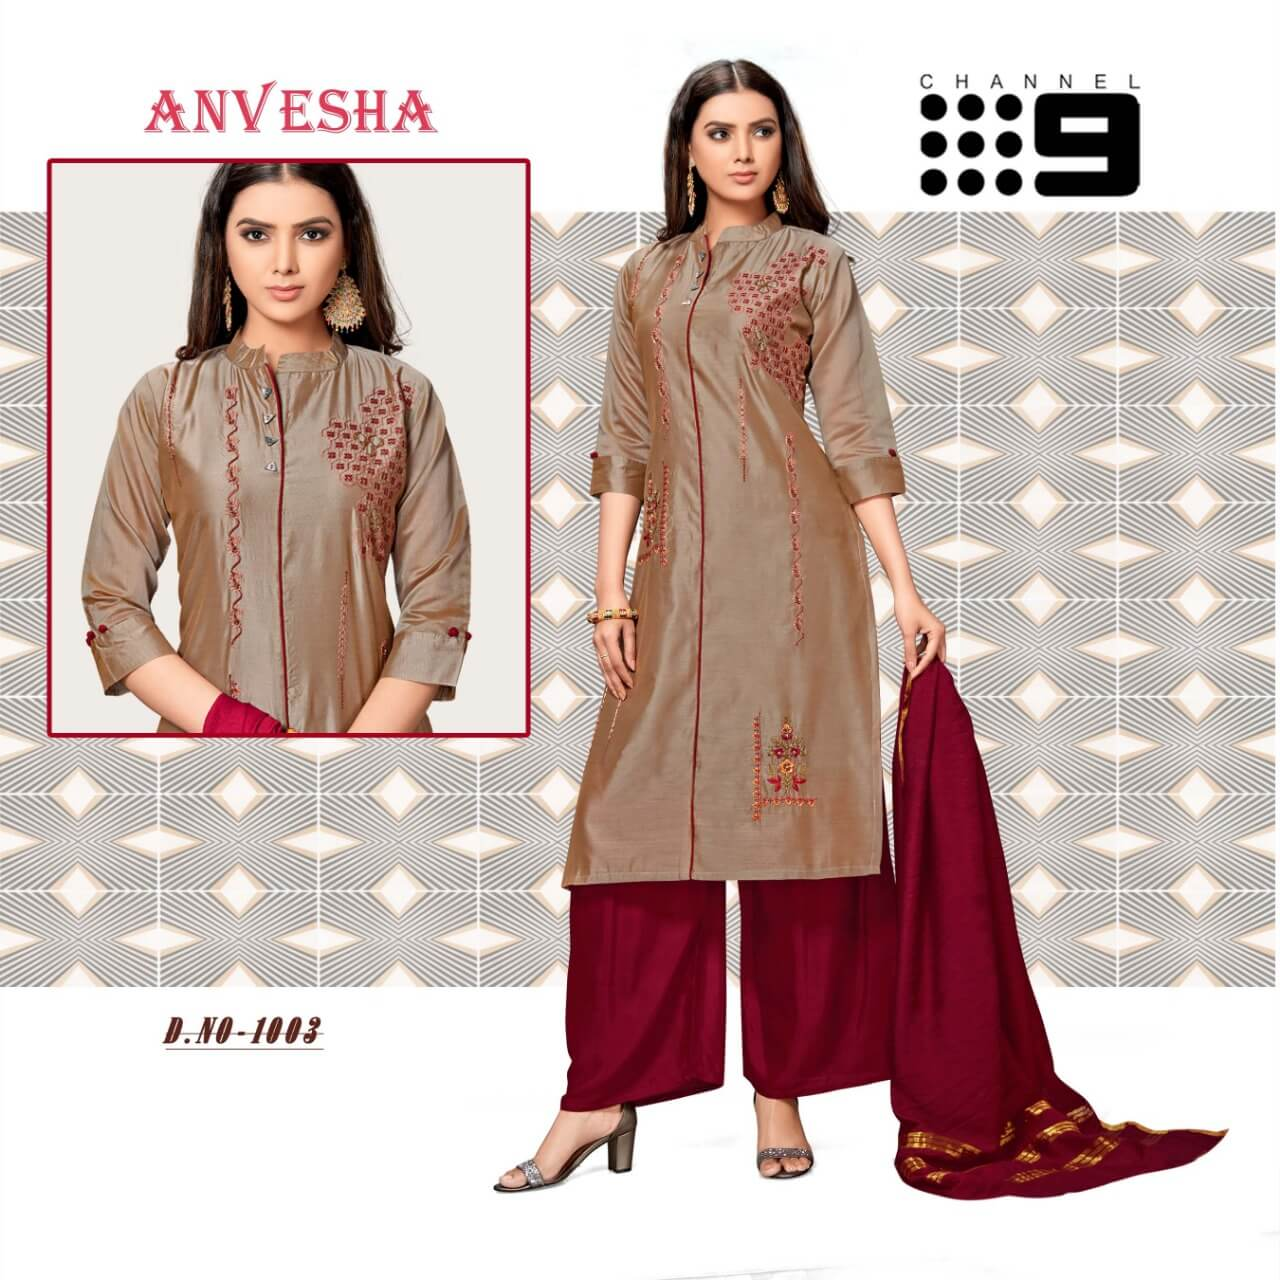 Channel 9 Anvesha collection 5